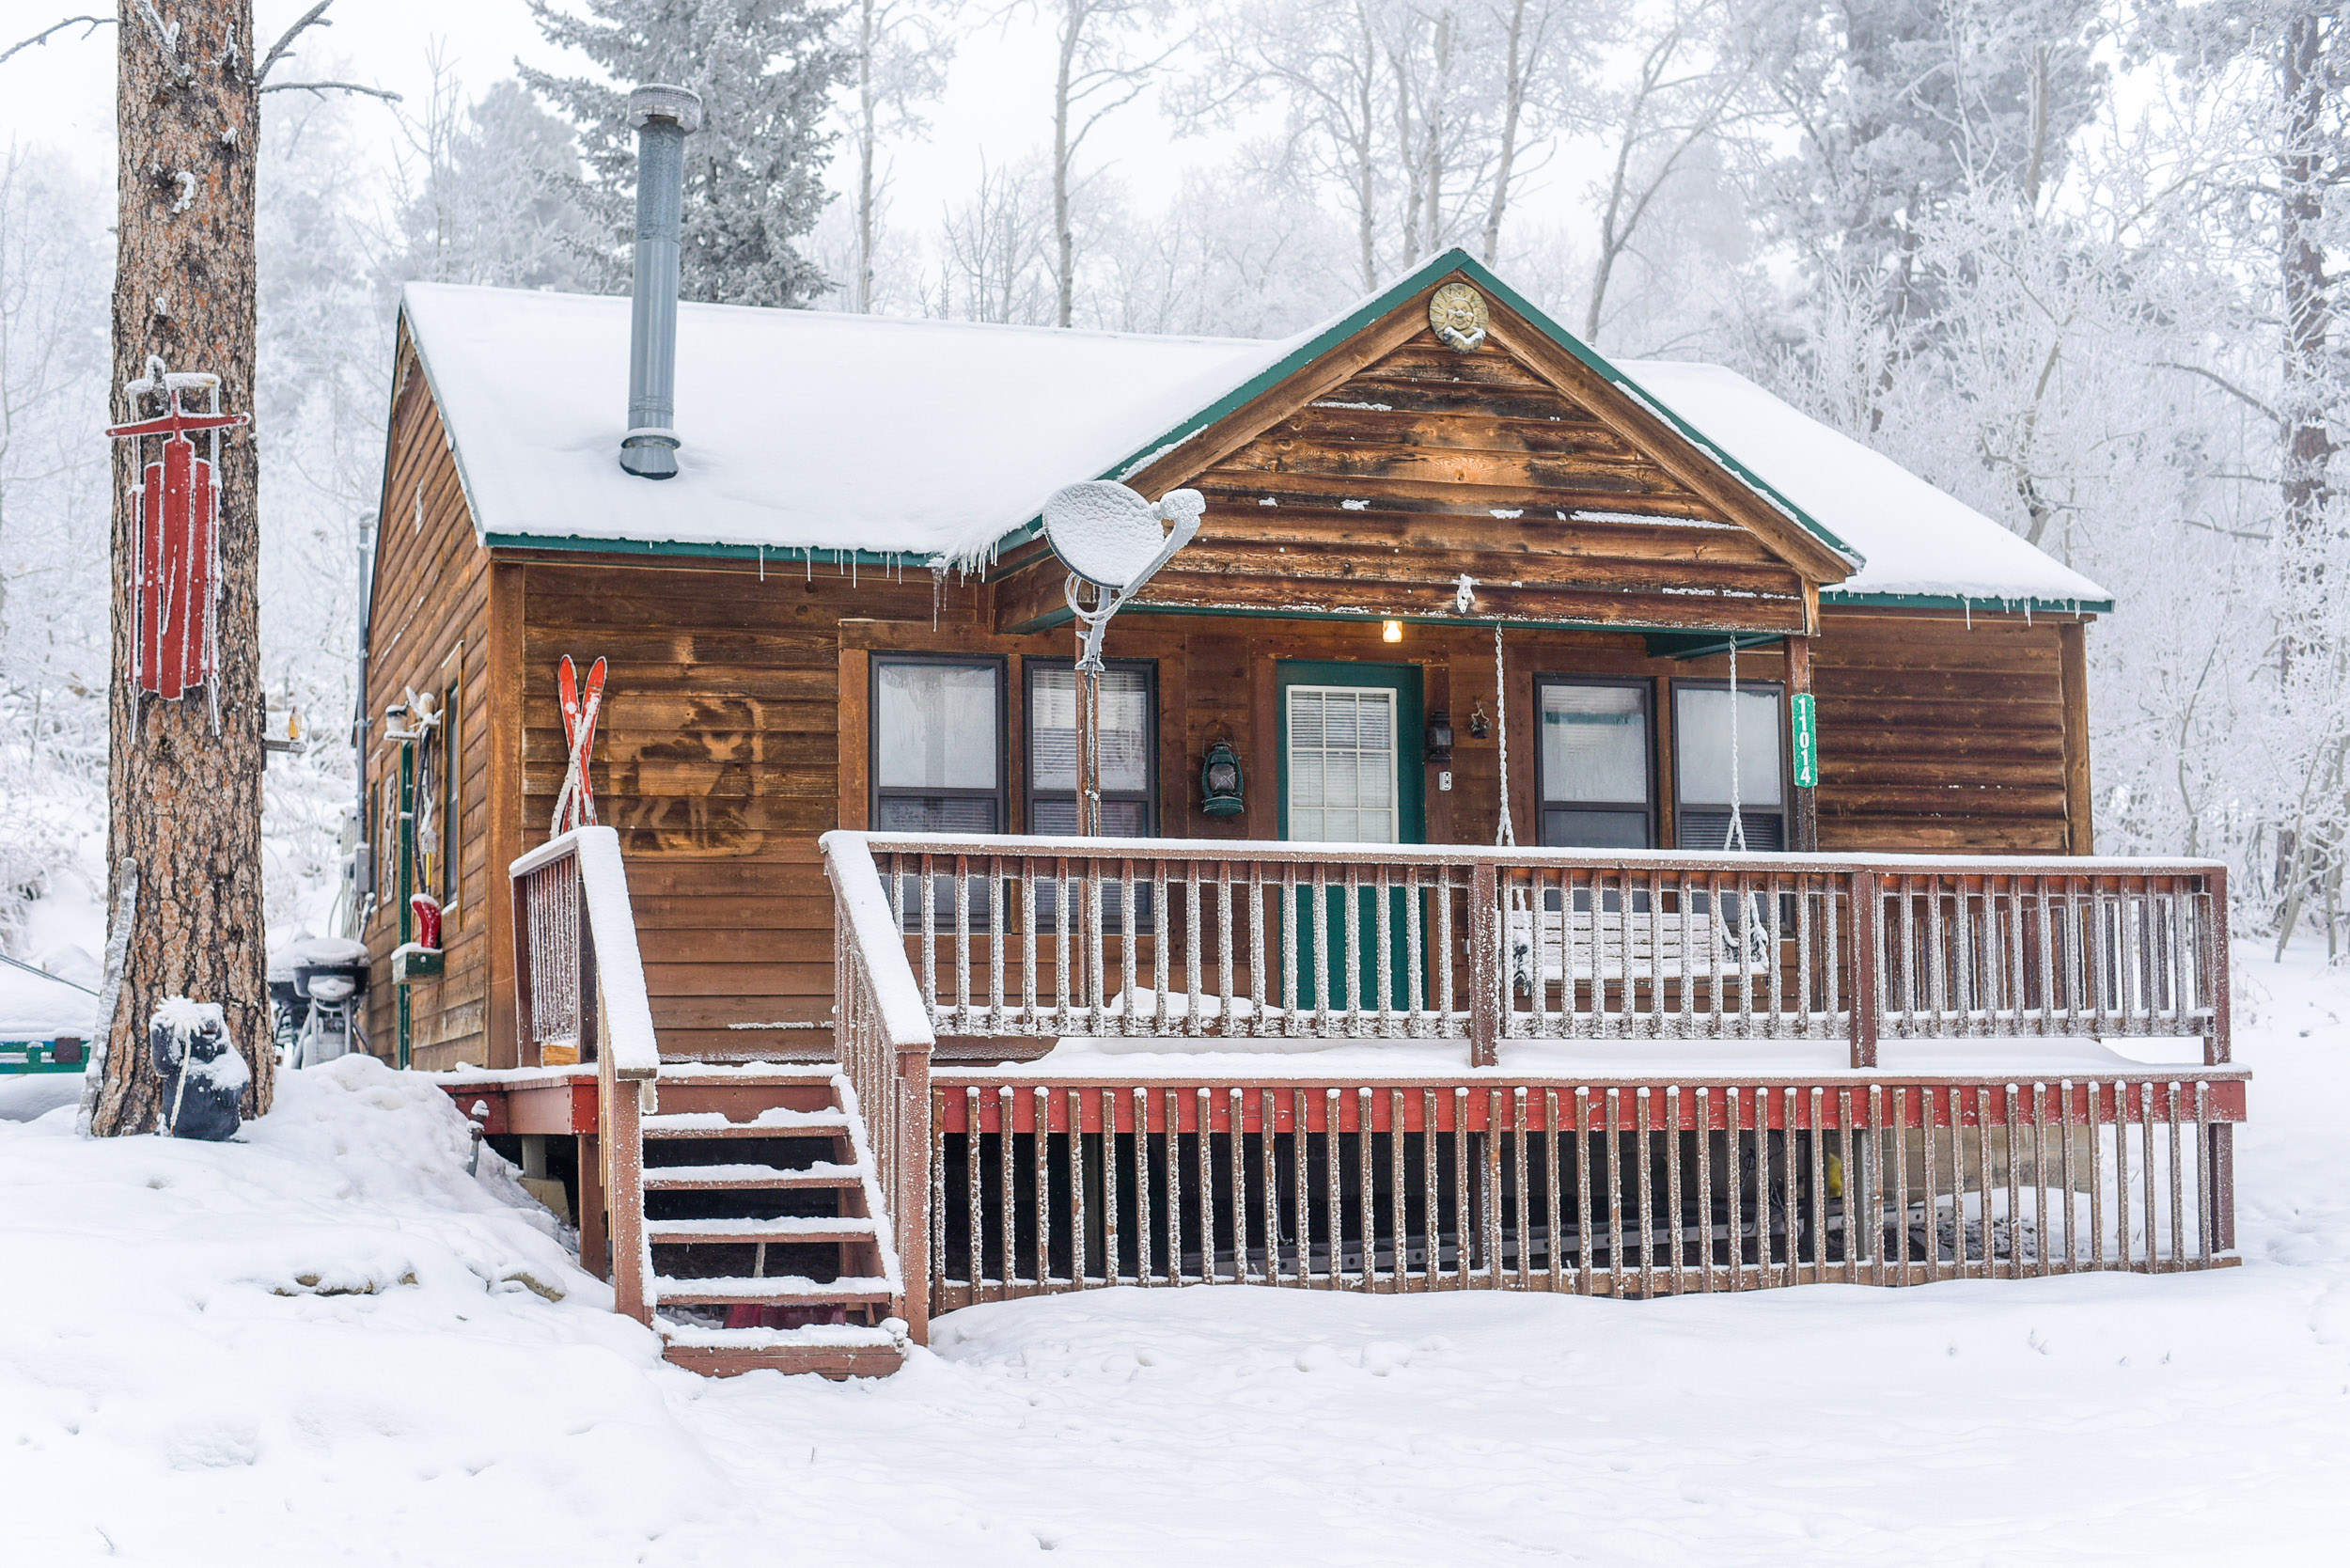 snow warming lake gold winter forest rentals sports early national cabins cabin park recreation wintersports patrol hut with detailfull backcountry in sno willamette